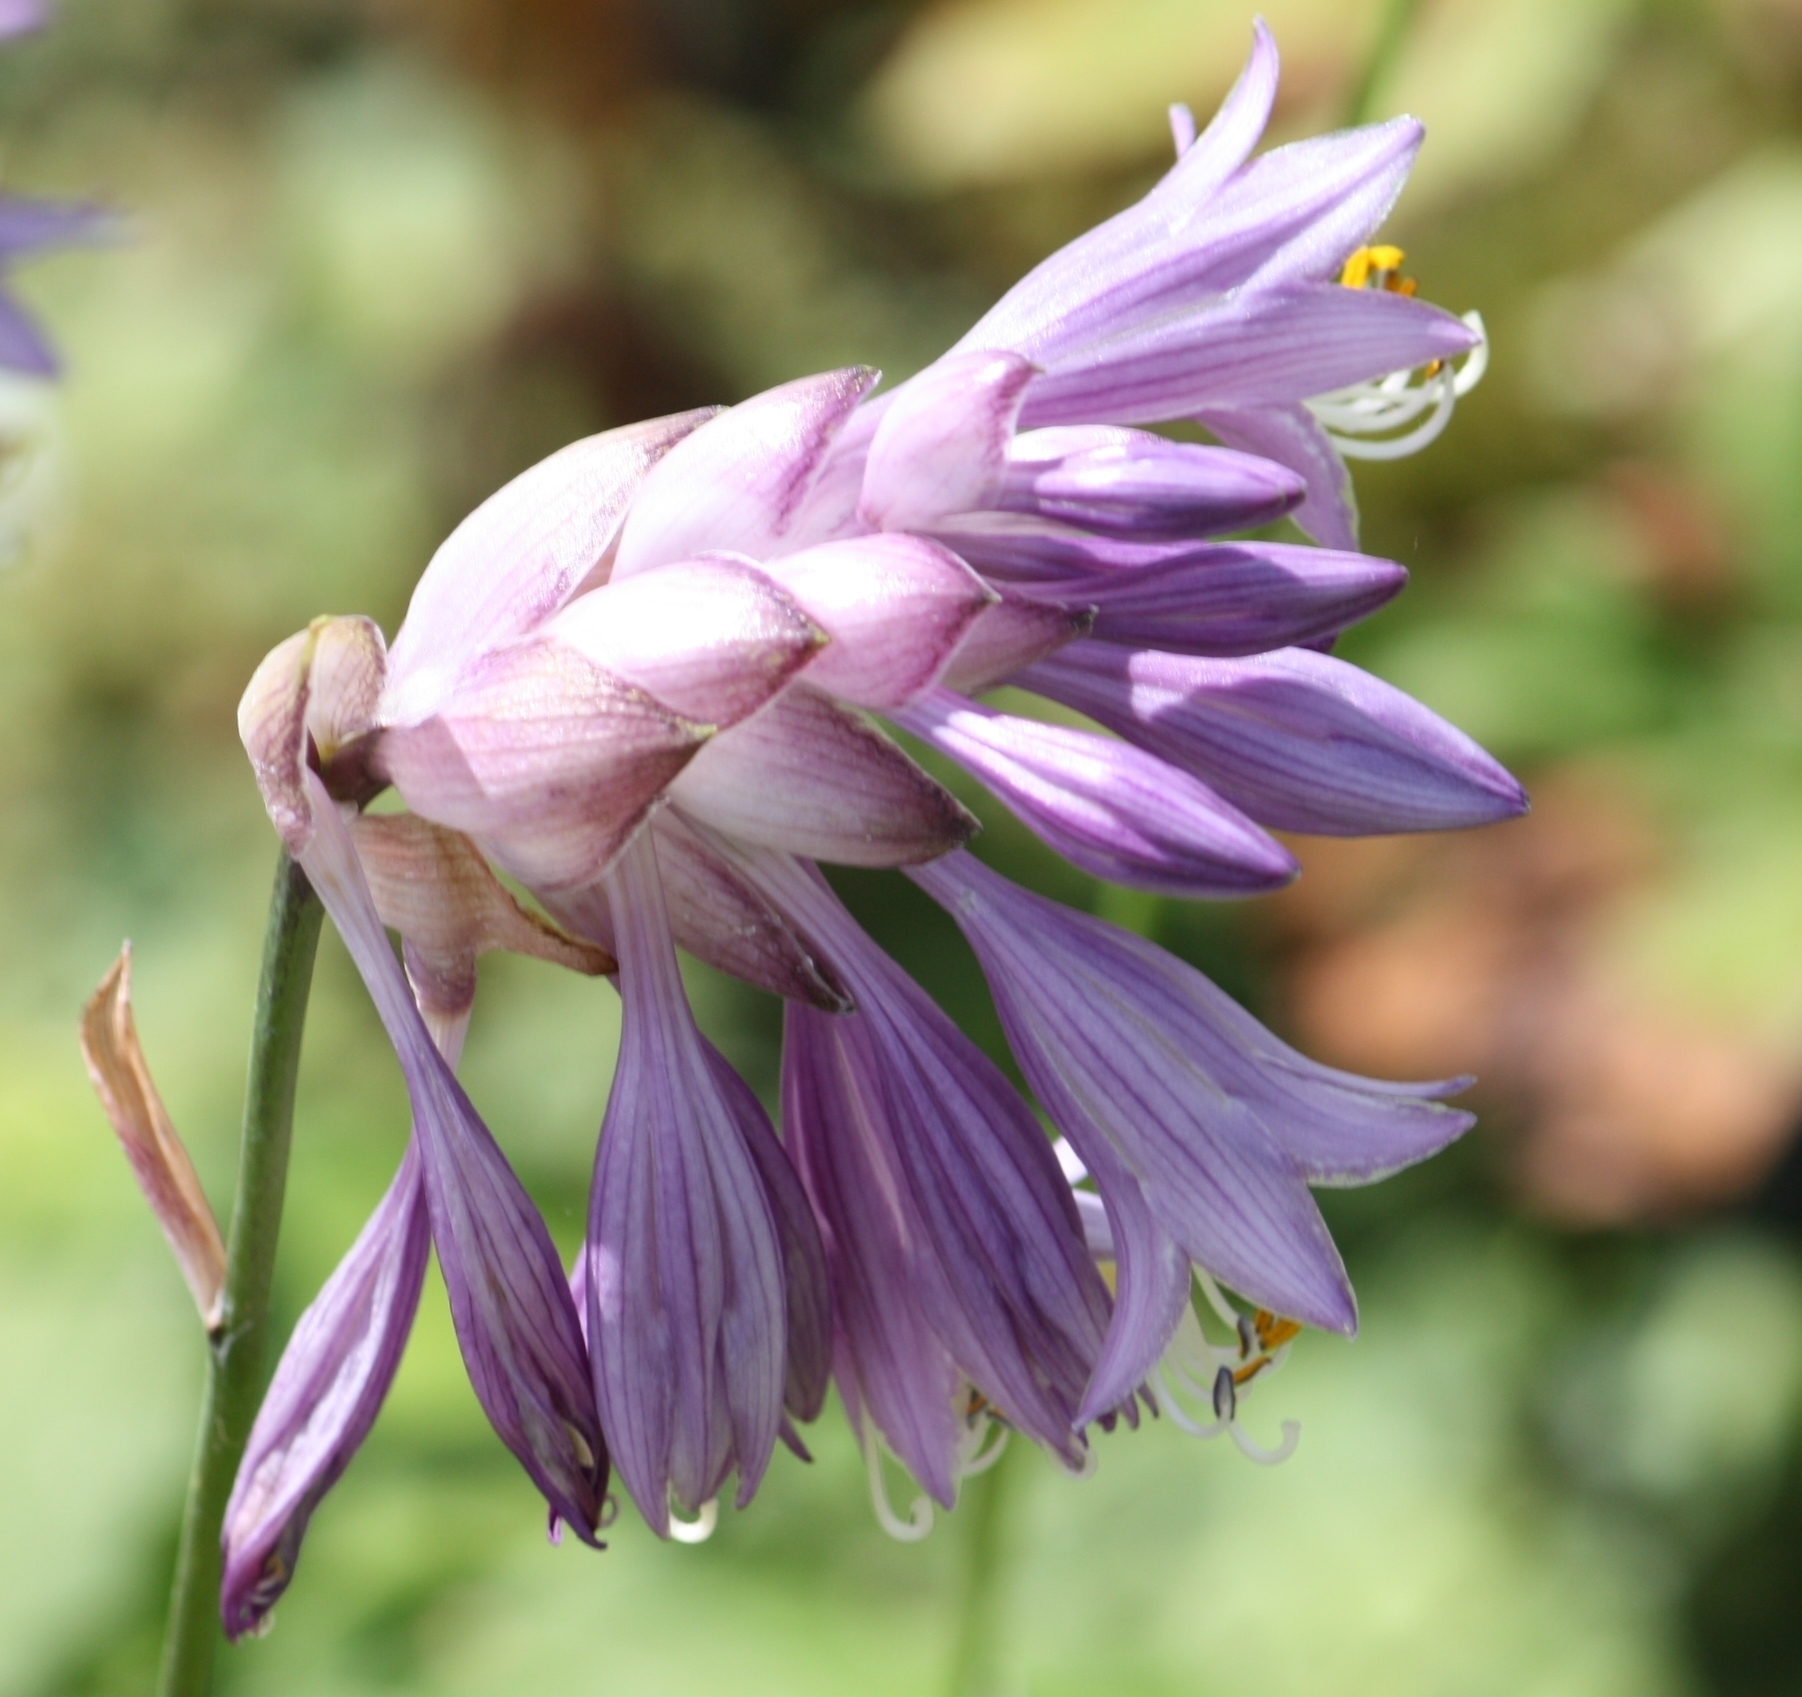 Edelweiss Perennials. Hosta mukayama 'Purple Flamingo'